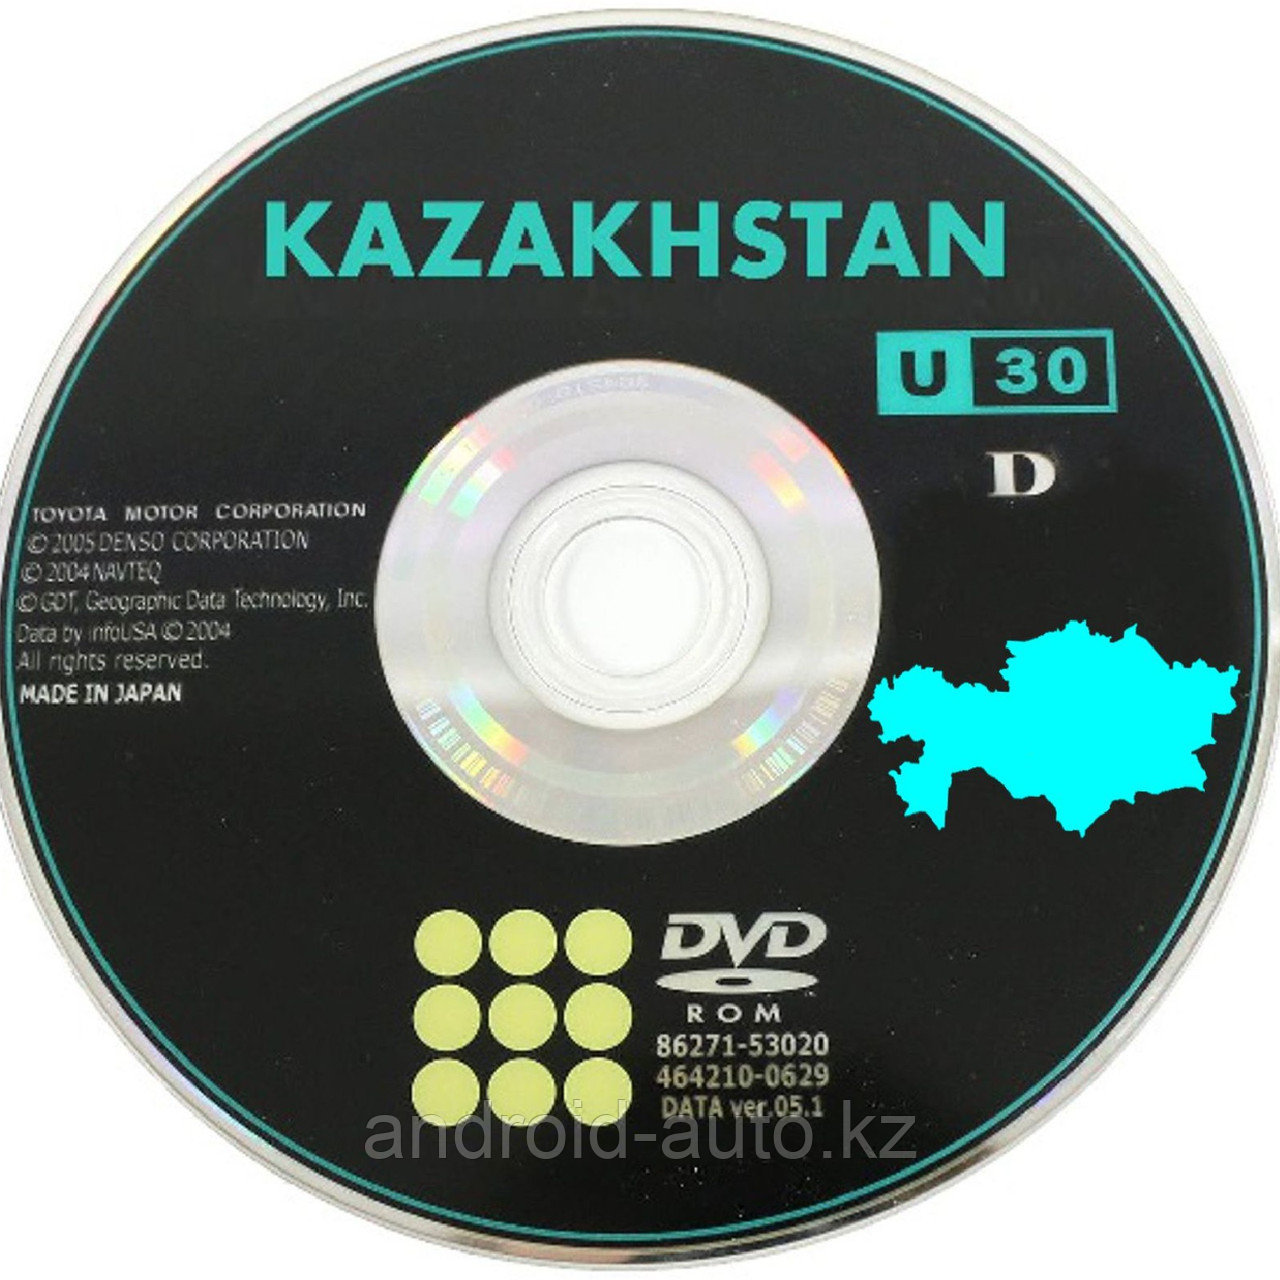 GEN-4 DVD NAVIGATION MAP of KAZAKHSTAN - (DENSO) LEXUS LX470 - 2004-2007